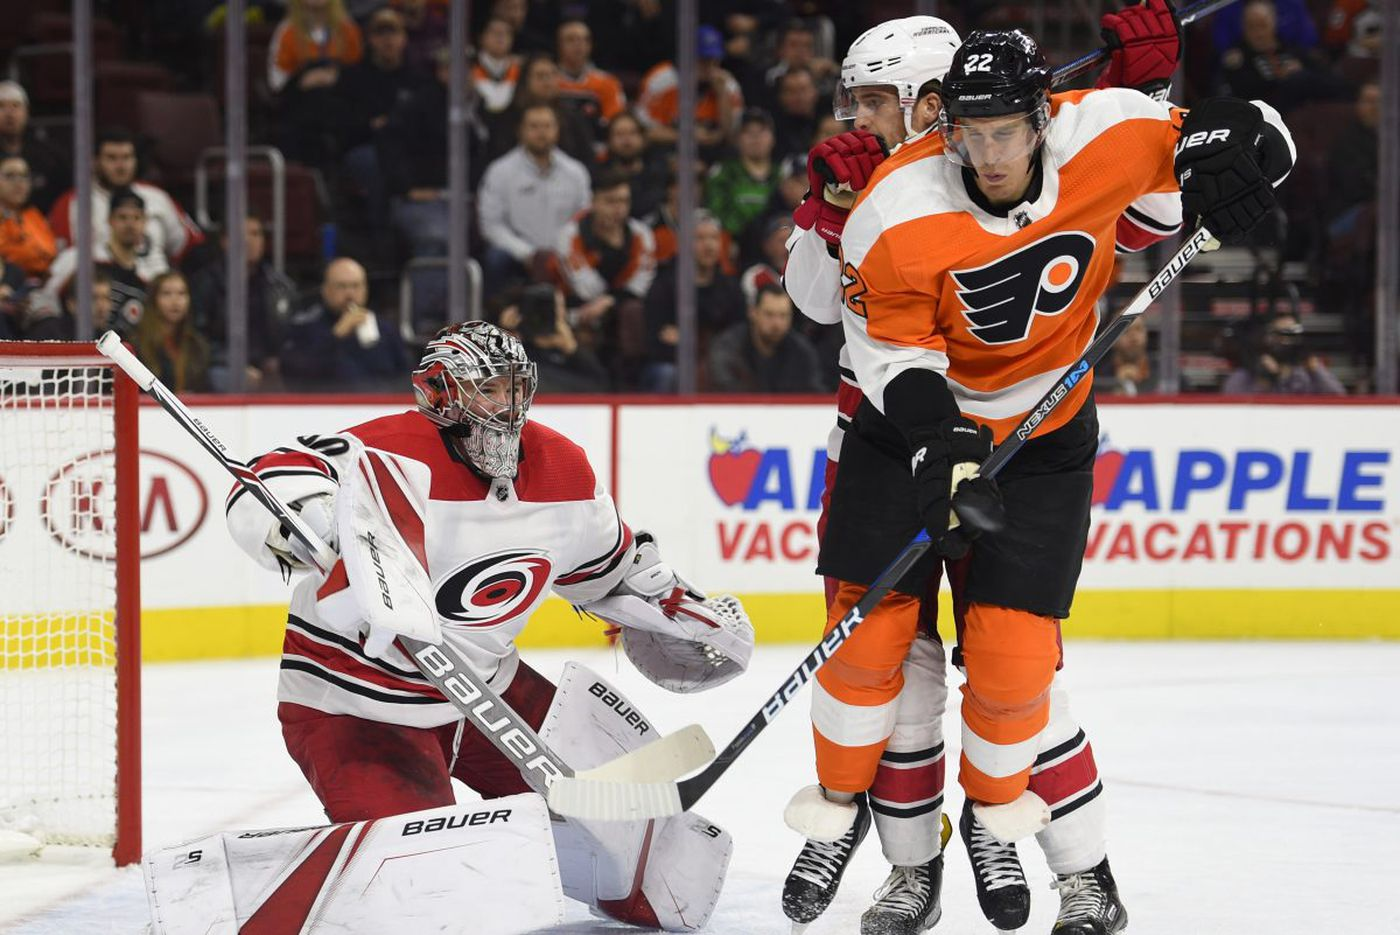 Flyers-Hurricanes preview: Philly needs to be in desperation mode